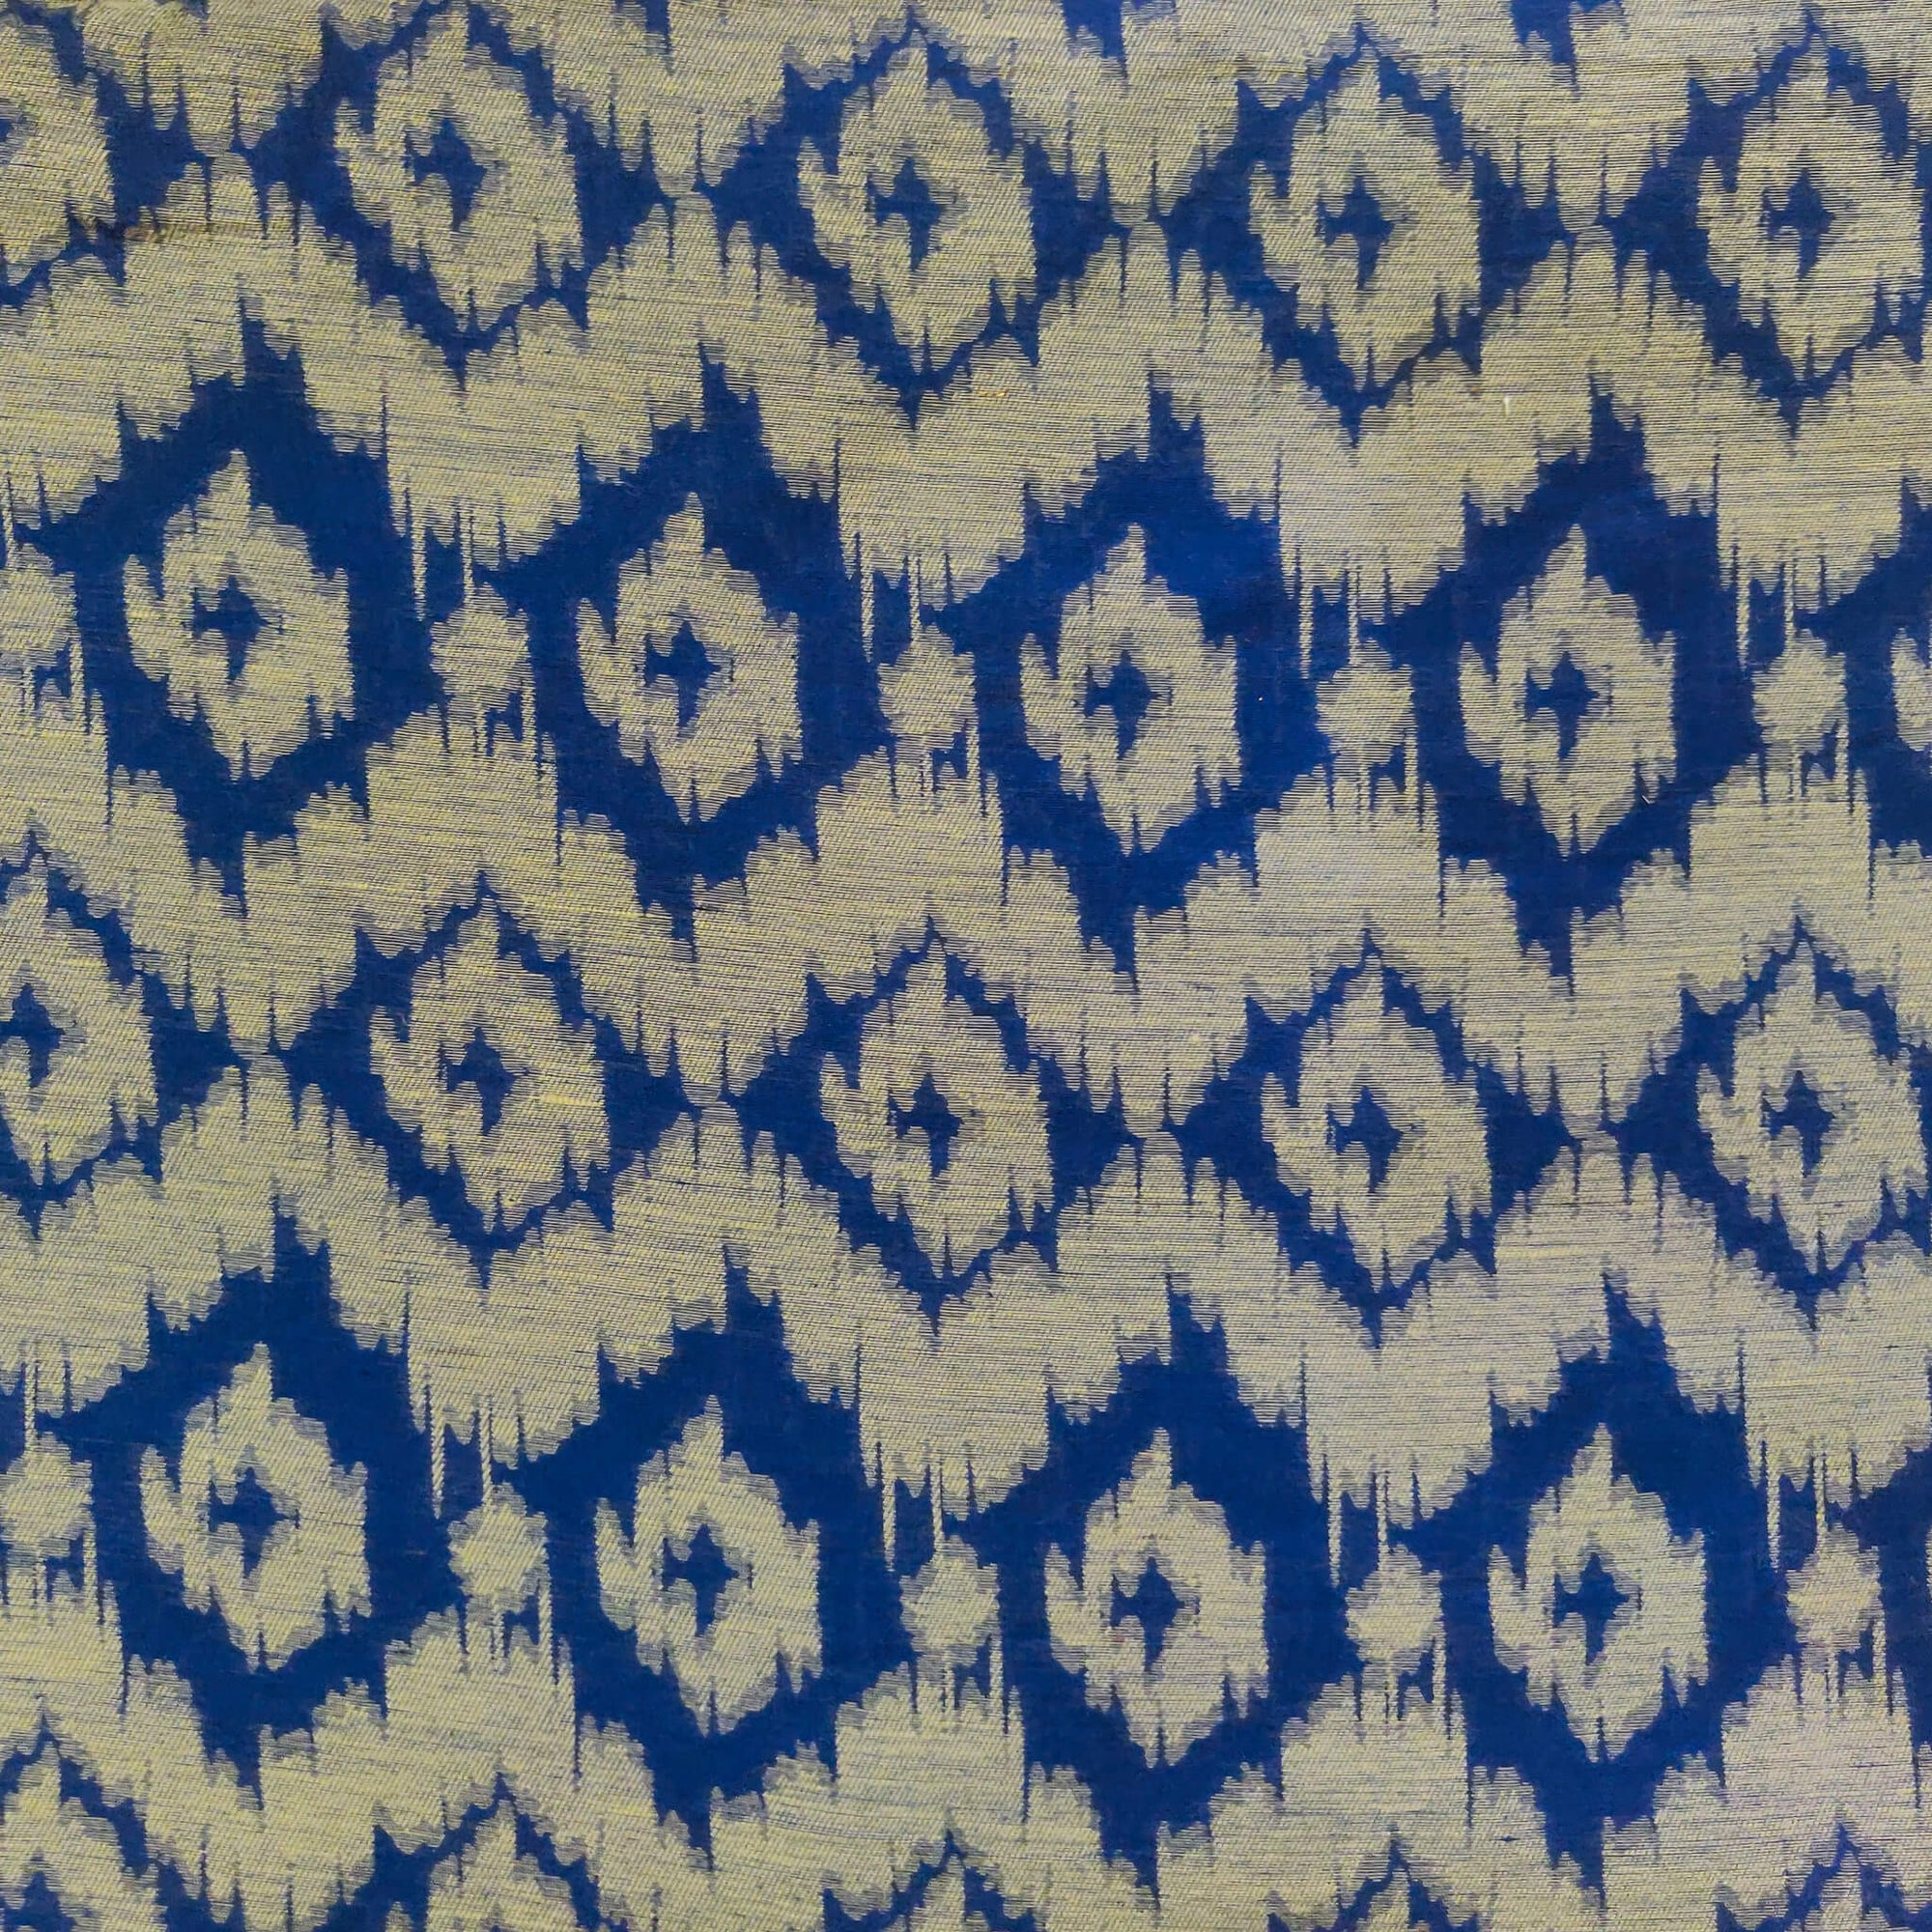 Cotton Silk Blue Nano Ikkat With Blurry Digitally Woven Pattern